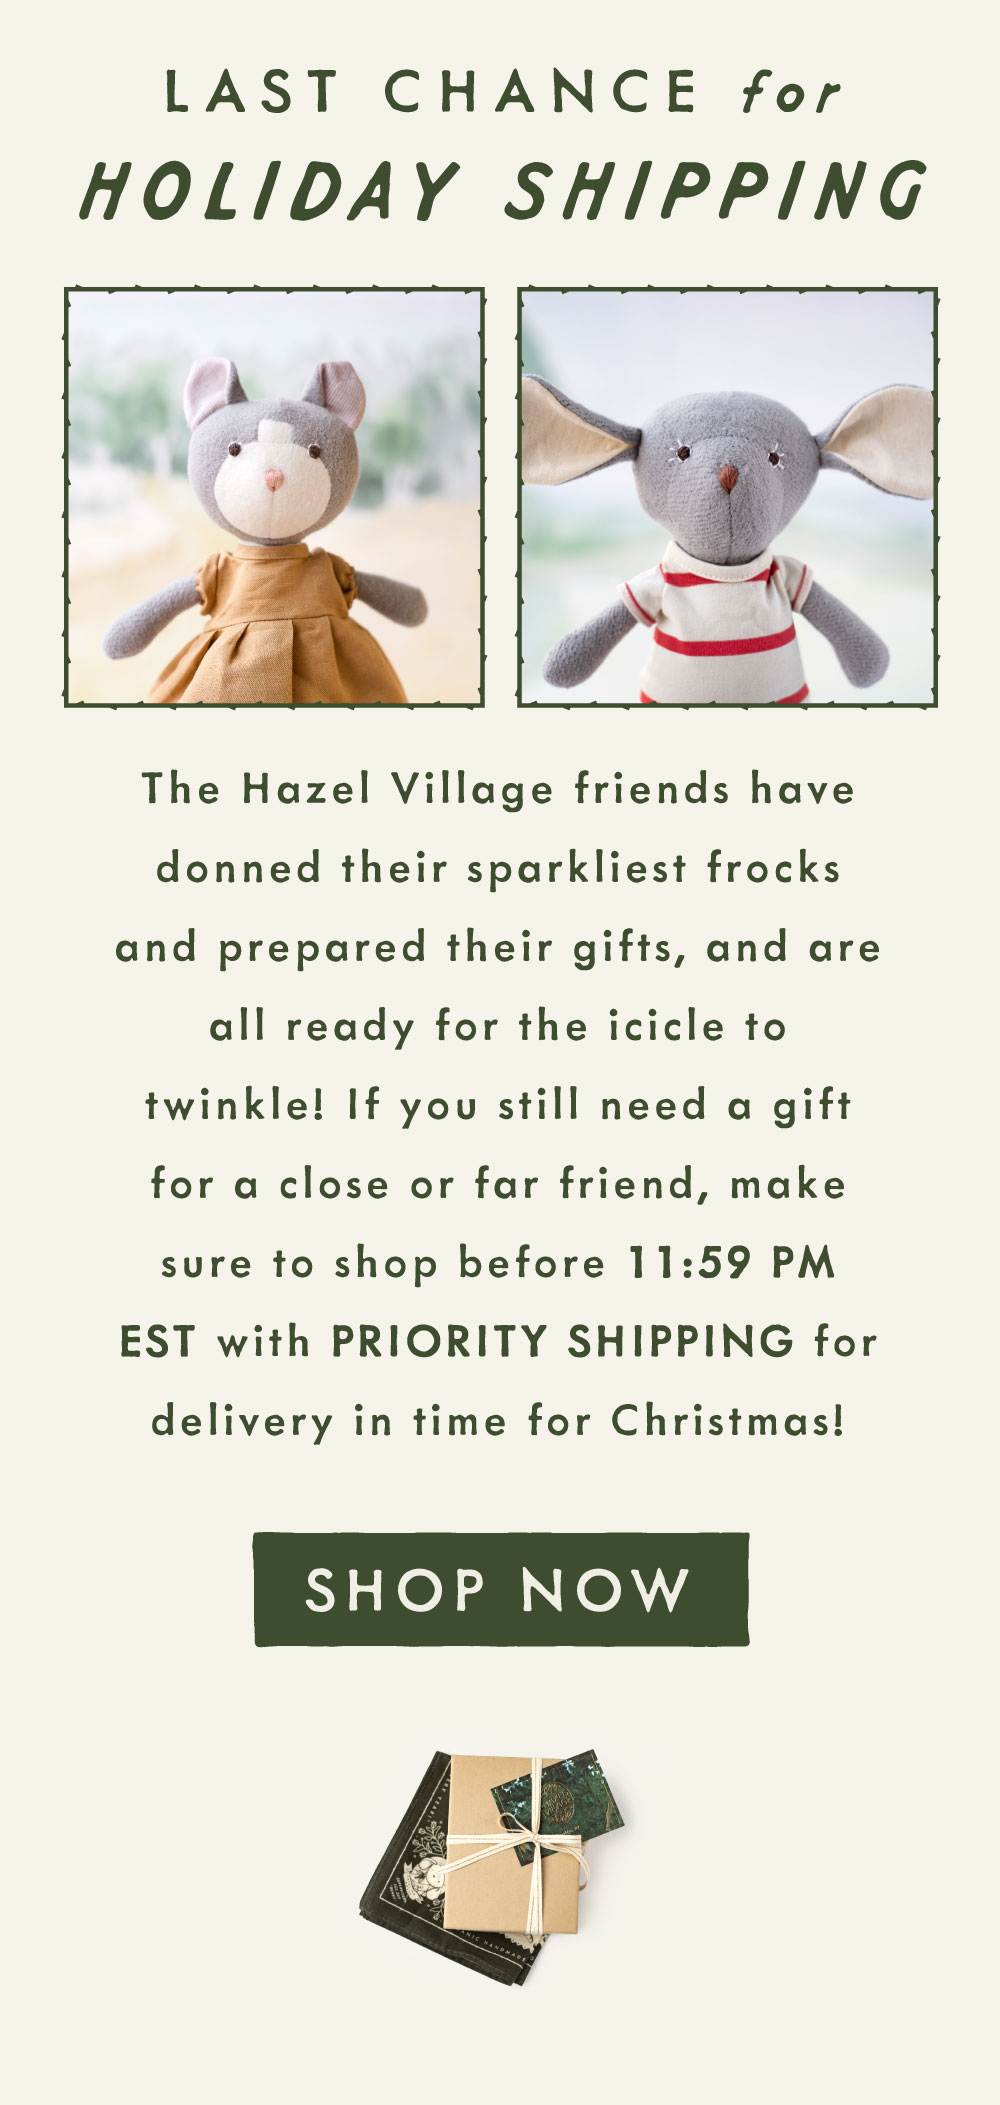 Last chance for holiday shipping! The Hazel Village friends have donned their sparkliest frocks and prepared their gifts, and are all ready for the icicle to twinkle! If you still need a gift for a close or far friend, make sure to shop before 11:59 PM EST with PRIORITY SHIPPING for delivery in time for Christmas! Shop now